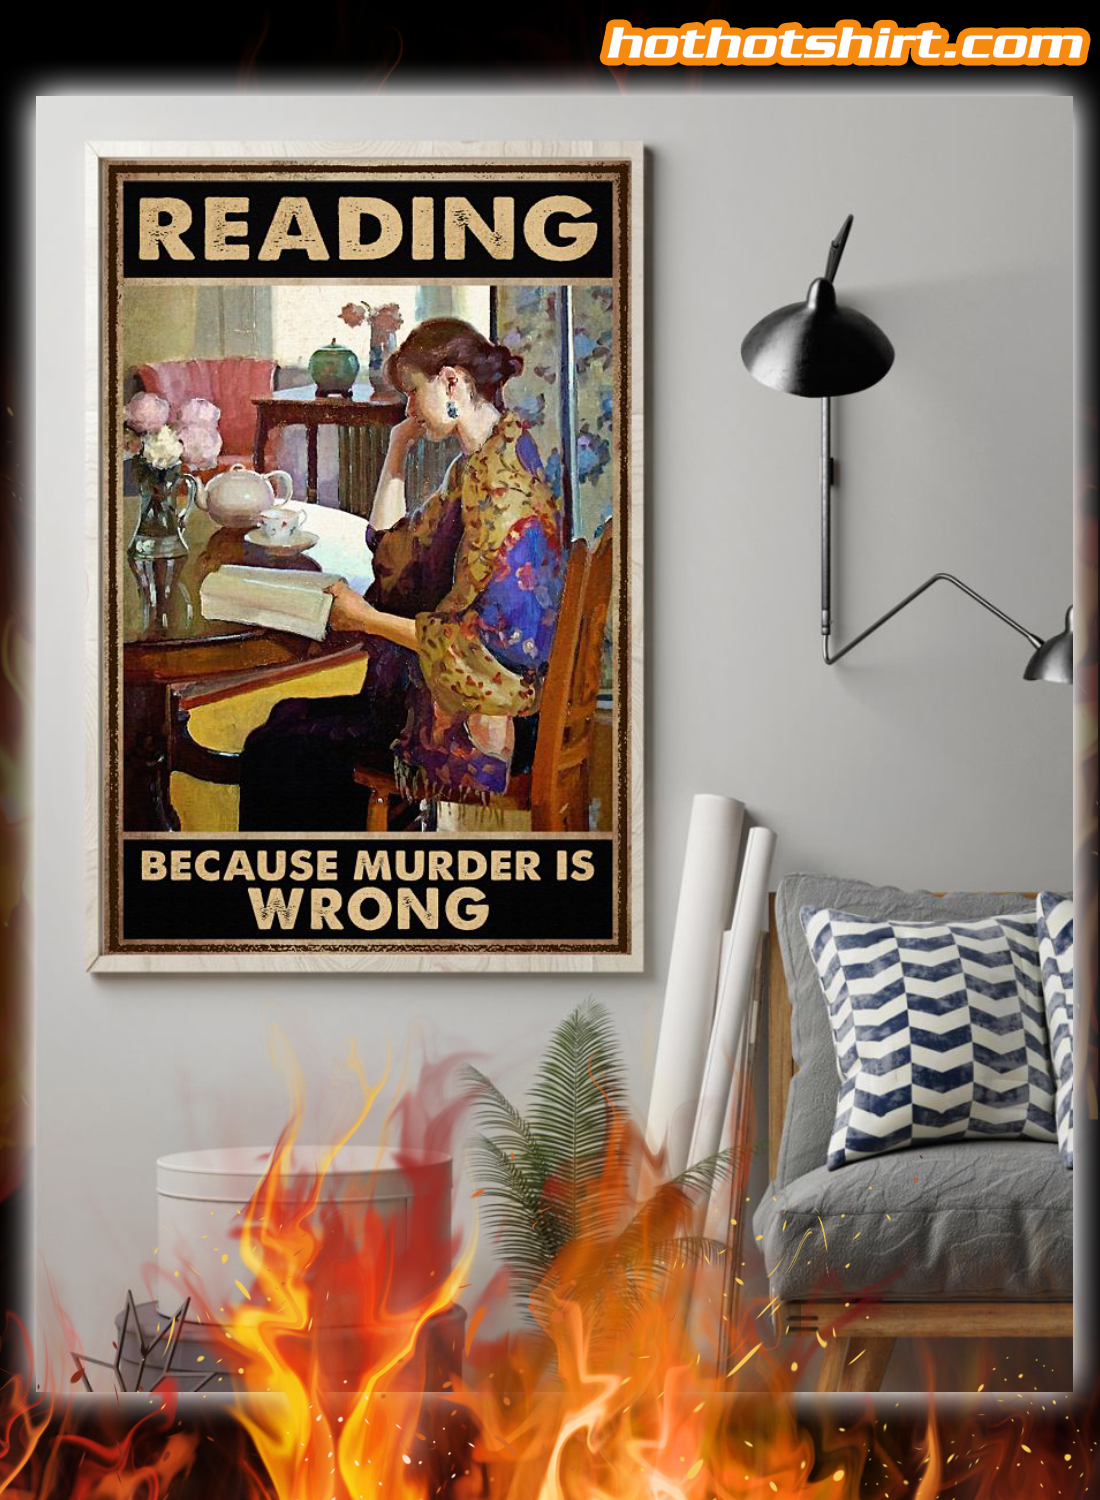 Reading because murder is wrong poster and canvas